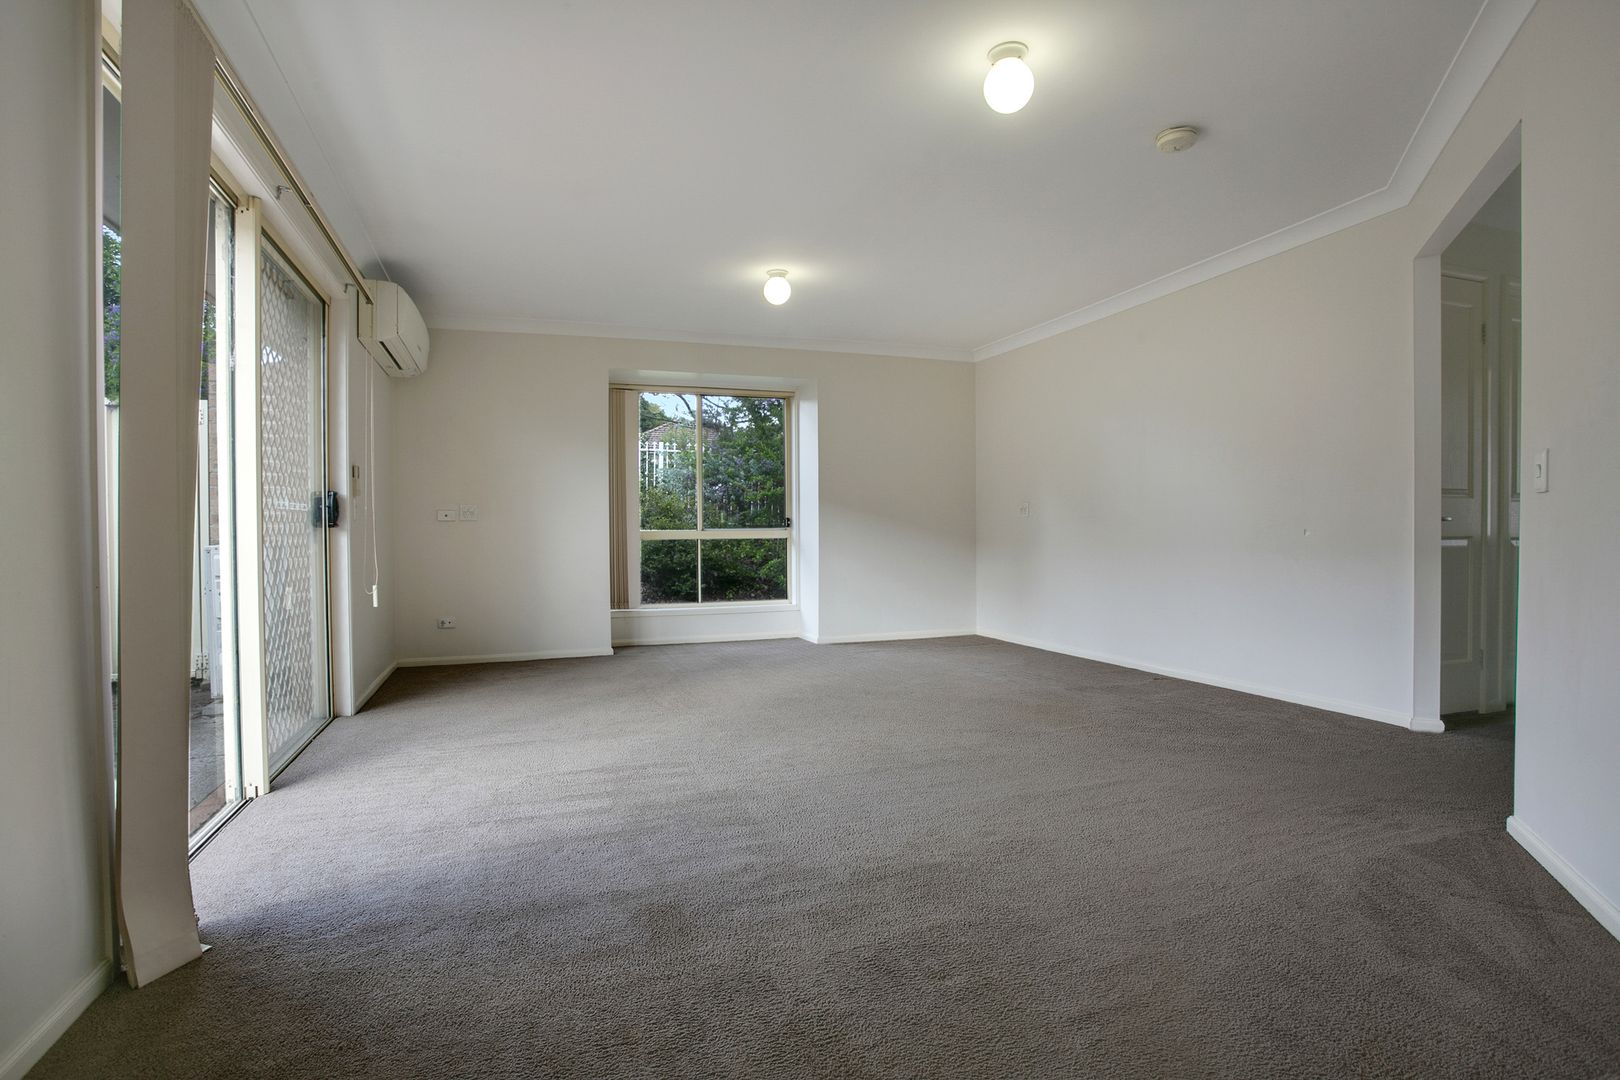 15/139 Stafford Street, Penrith NSW 2750, Image 1